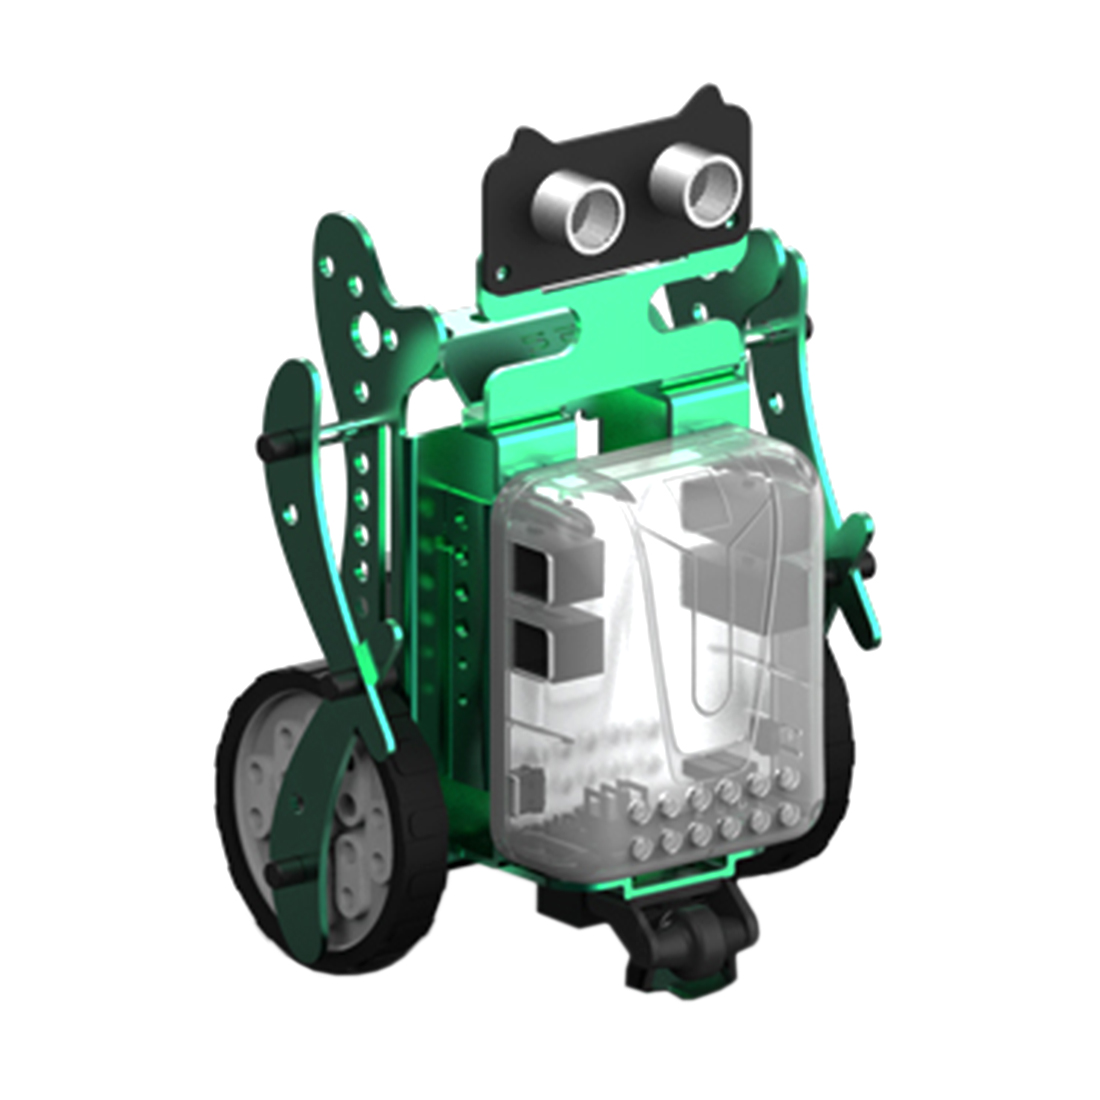 New 3-in-1 DIY Neo Programming Scratch Intelligent Obstacle Avoidance Car Robot Kit Electronic Toy Kids Adults - Green/Red